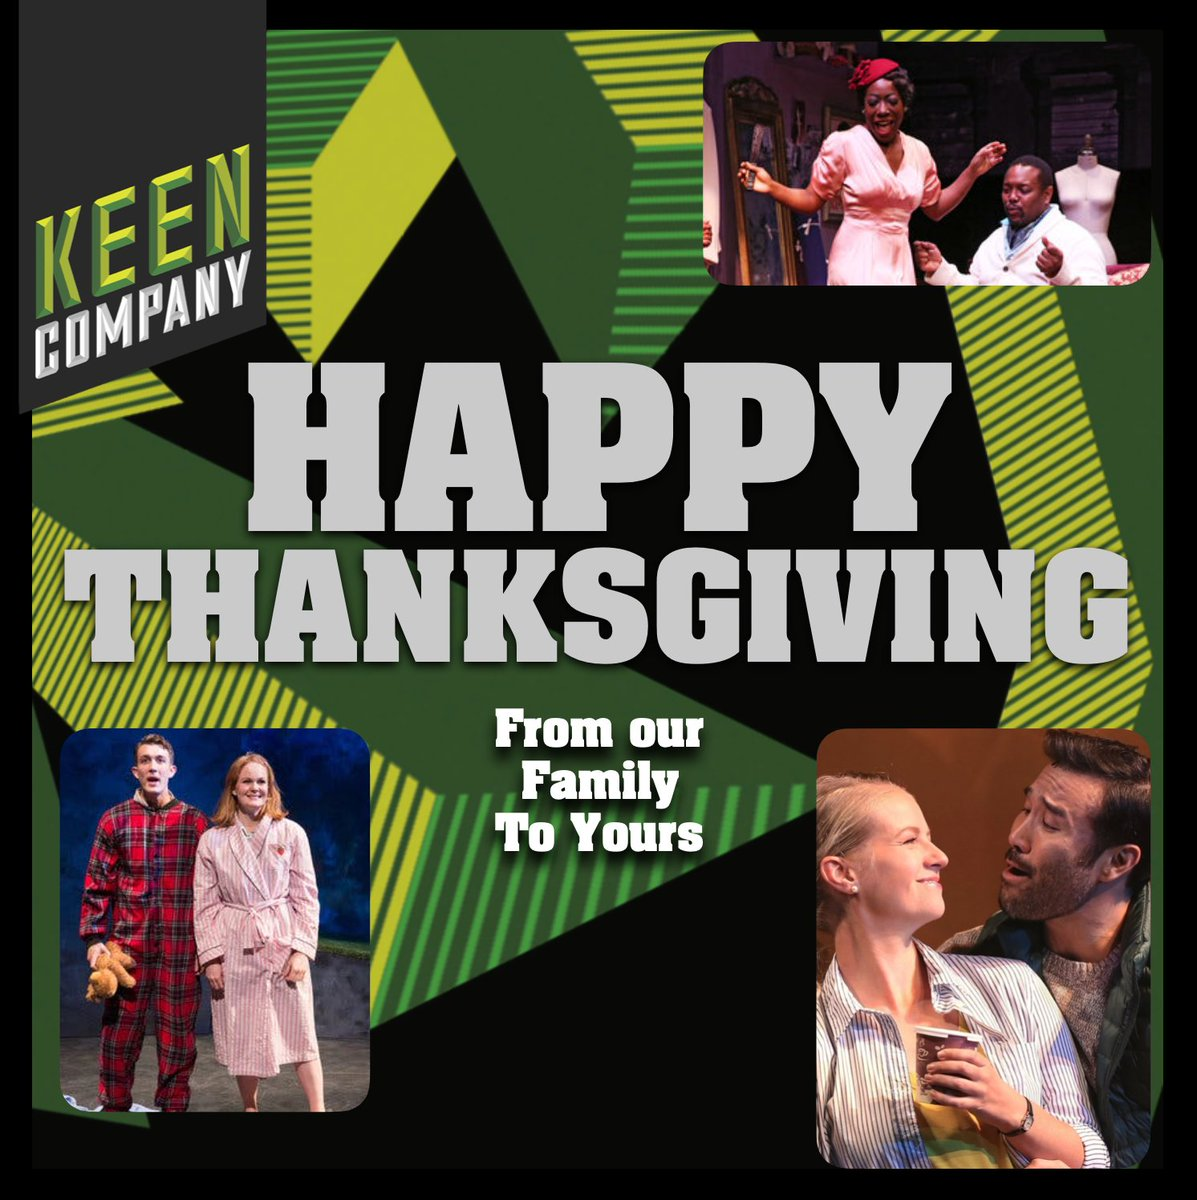 Keen Company lovingly wishes you and yours a very happy and healthy Thanksgiving!